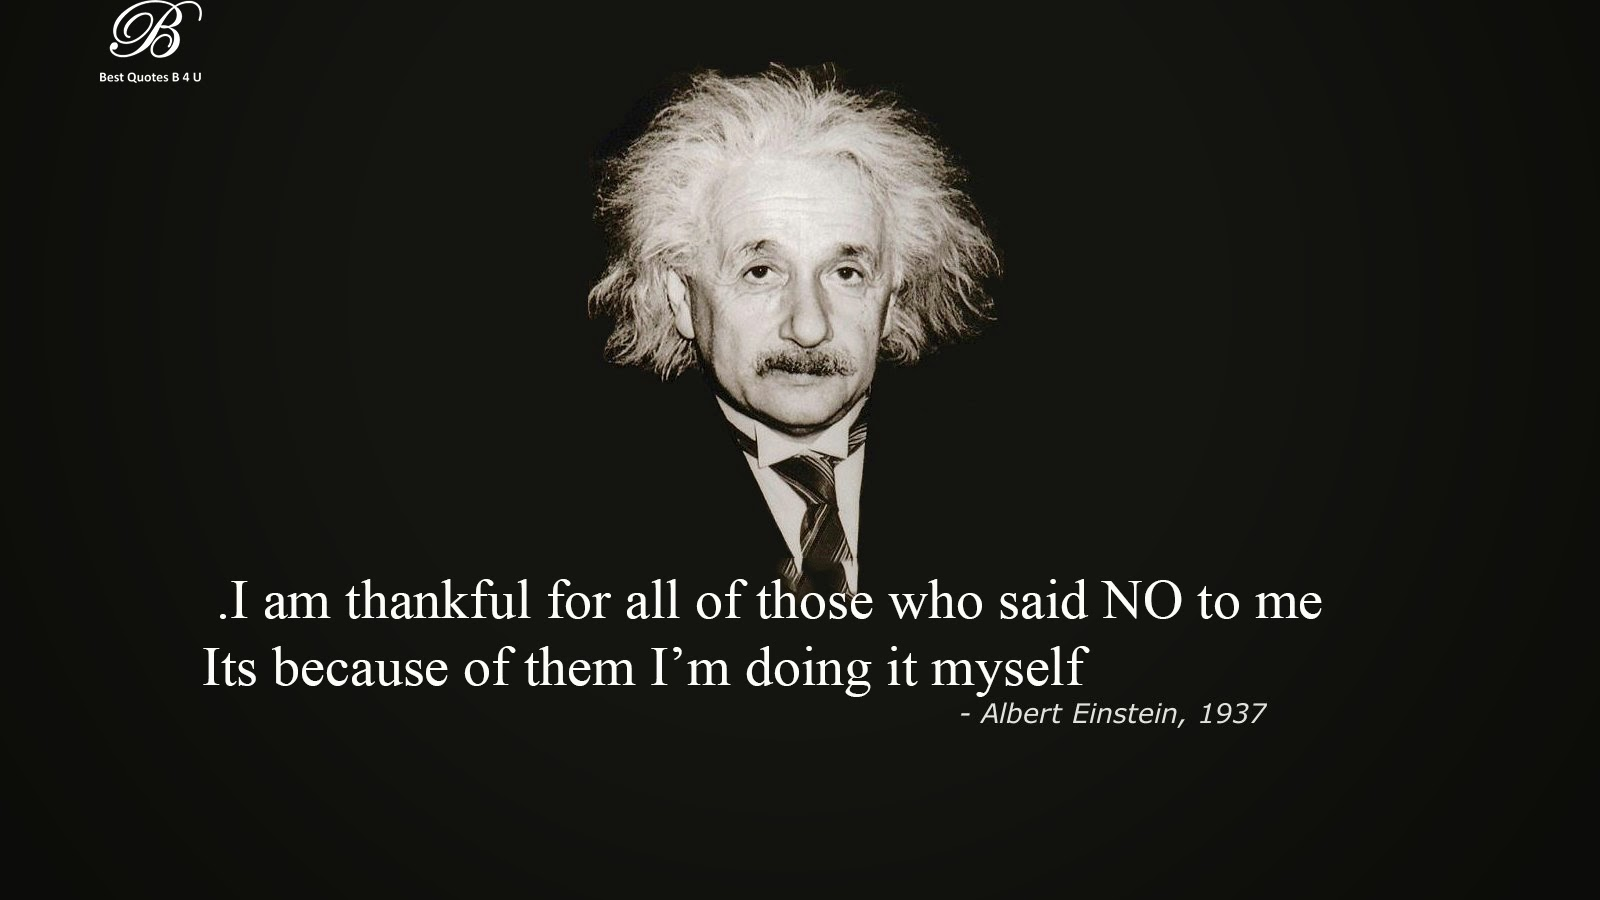 Best Inspirational Quotes Einstein Quotes with Beautiful Images and Wallpapers